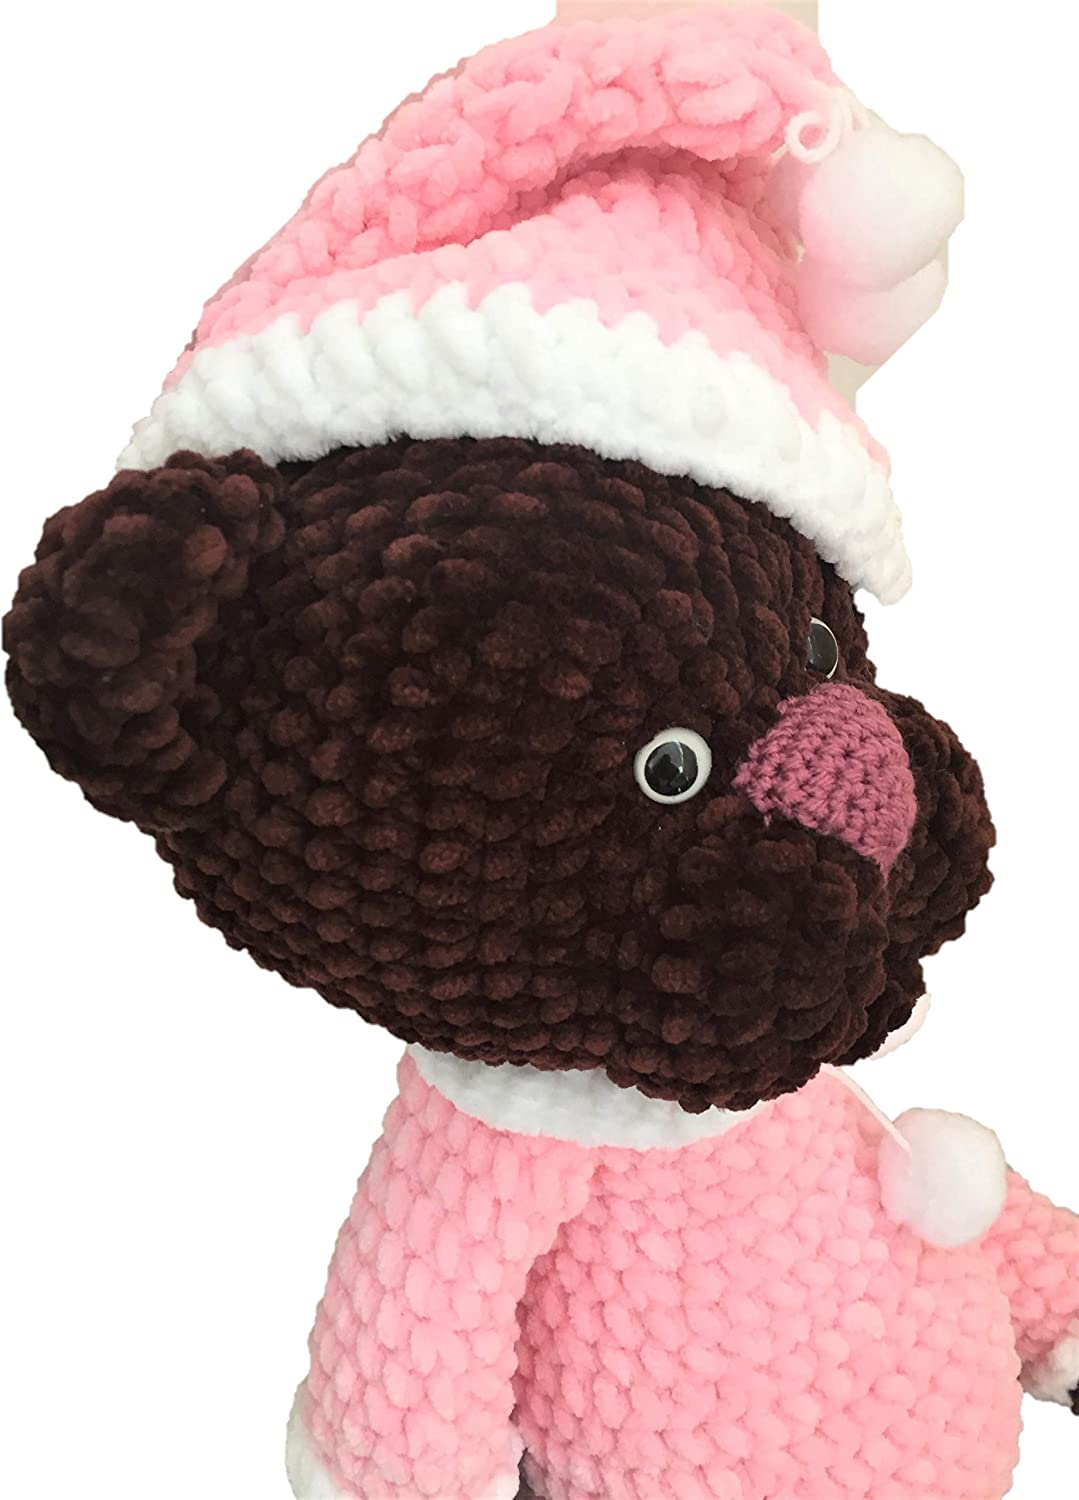 Soft Teddy Bear in Pajamas Knitted Toy Amigurumi Girl-bear as a Gift to the Child Knitted Teddy Bear Handmade.